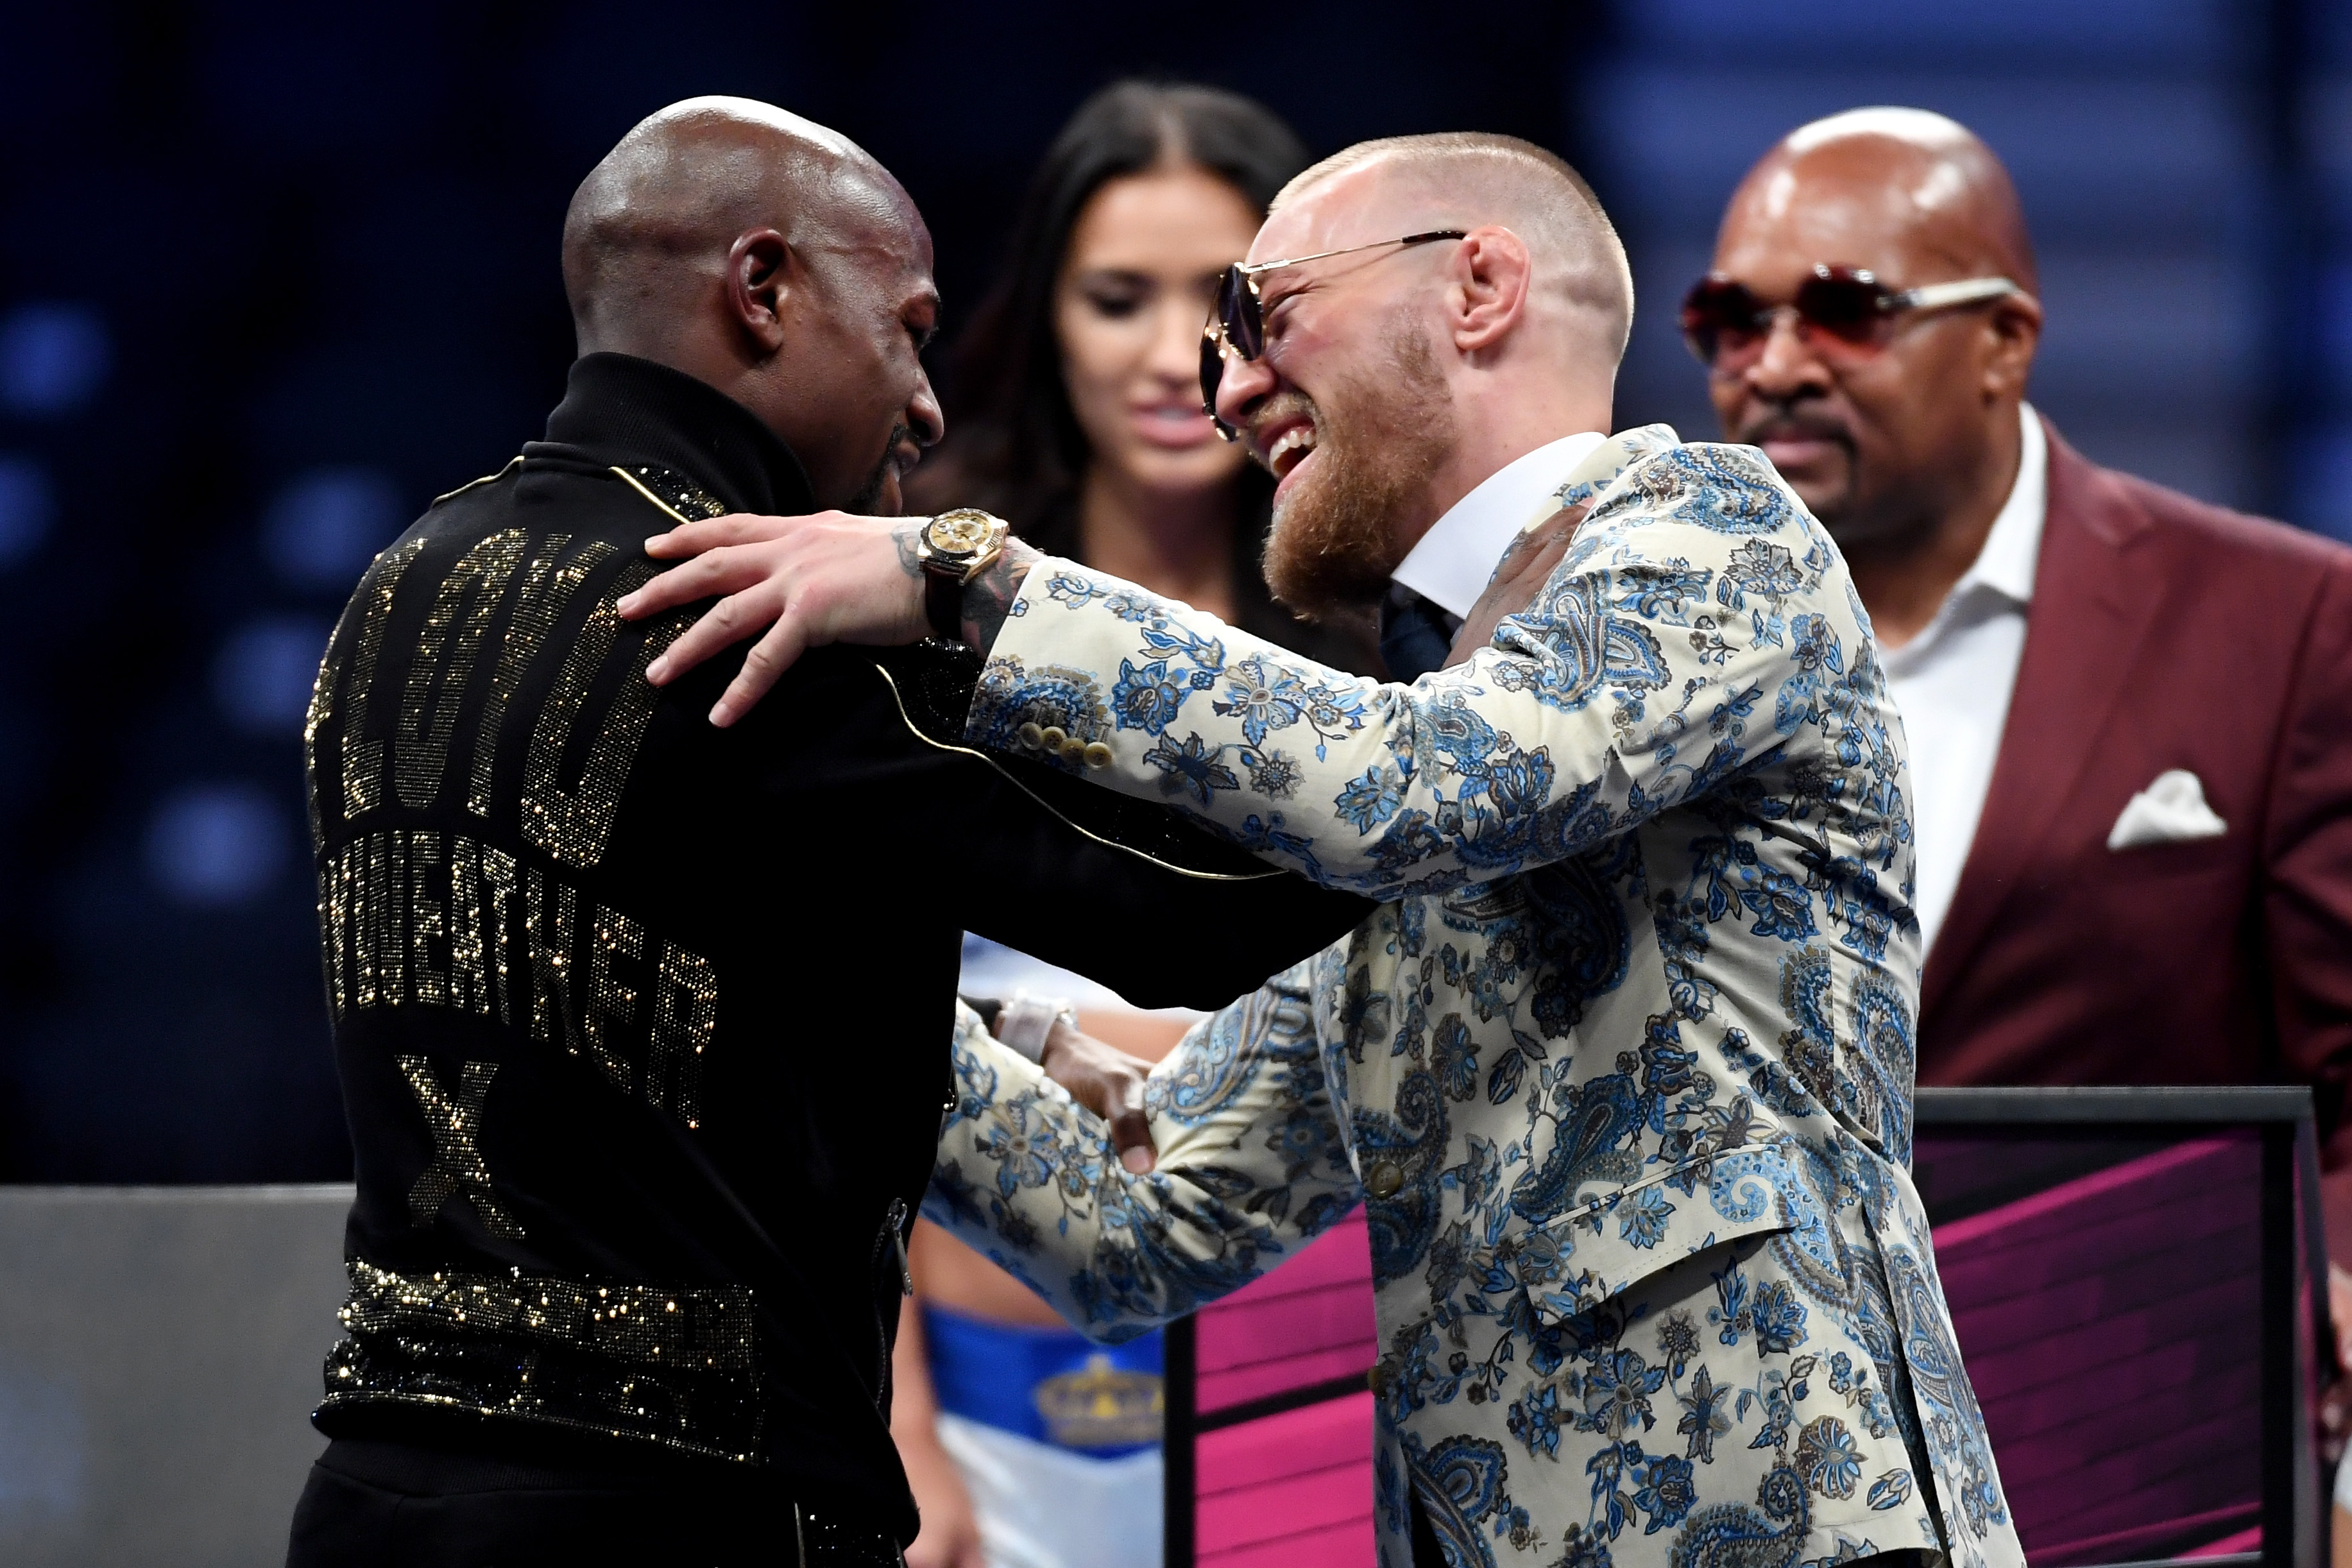 (L-R) Floyd Mayweather Jr. and Conor McGregor shake hands after Mayweather's 10th round TKO victory in their super welterweight boxing match at T-Mobile Arena in Las Vegas, Nevada on Aug. 26, 2017. (Ethan Miller/Getty Images)